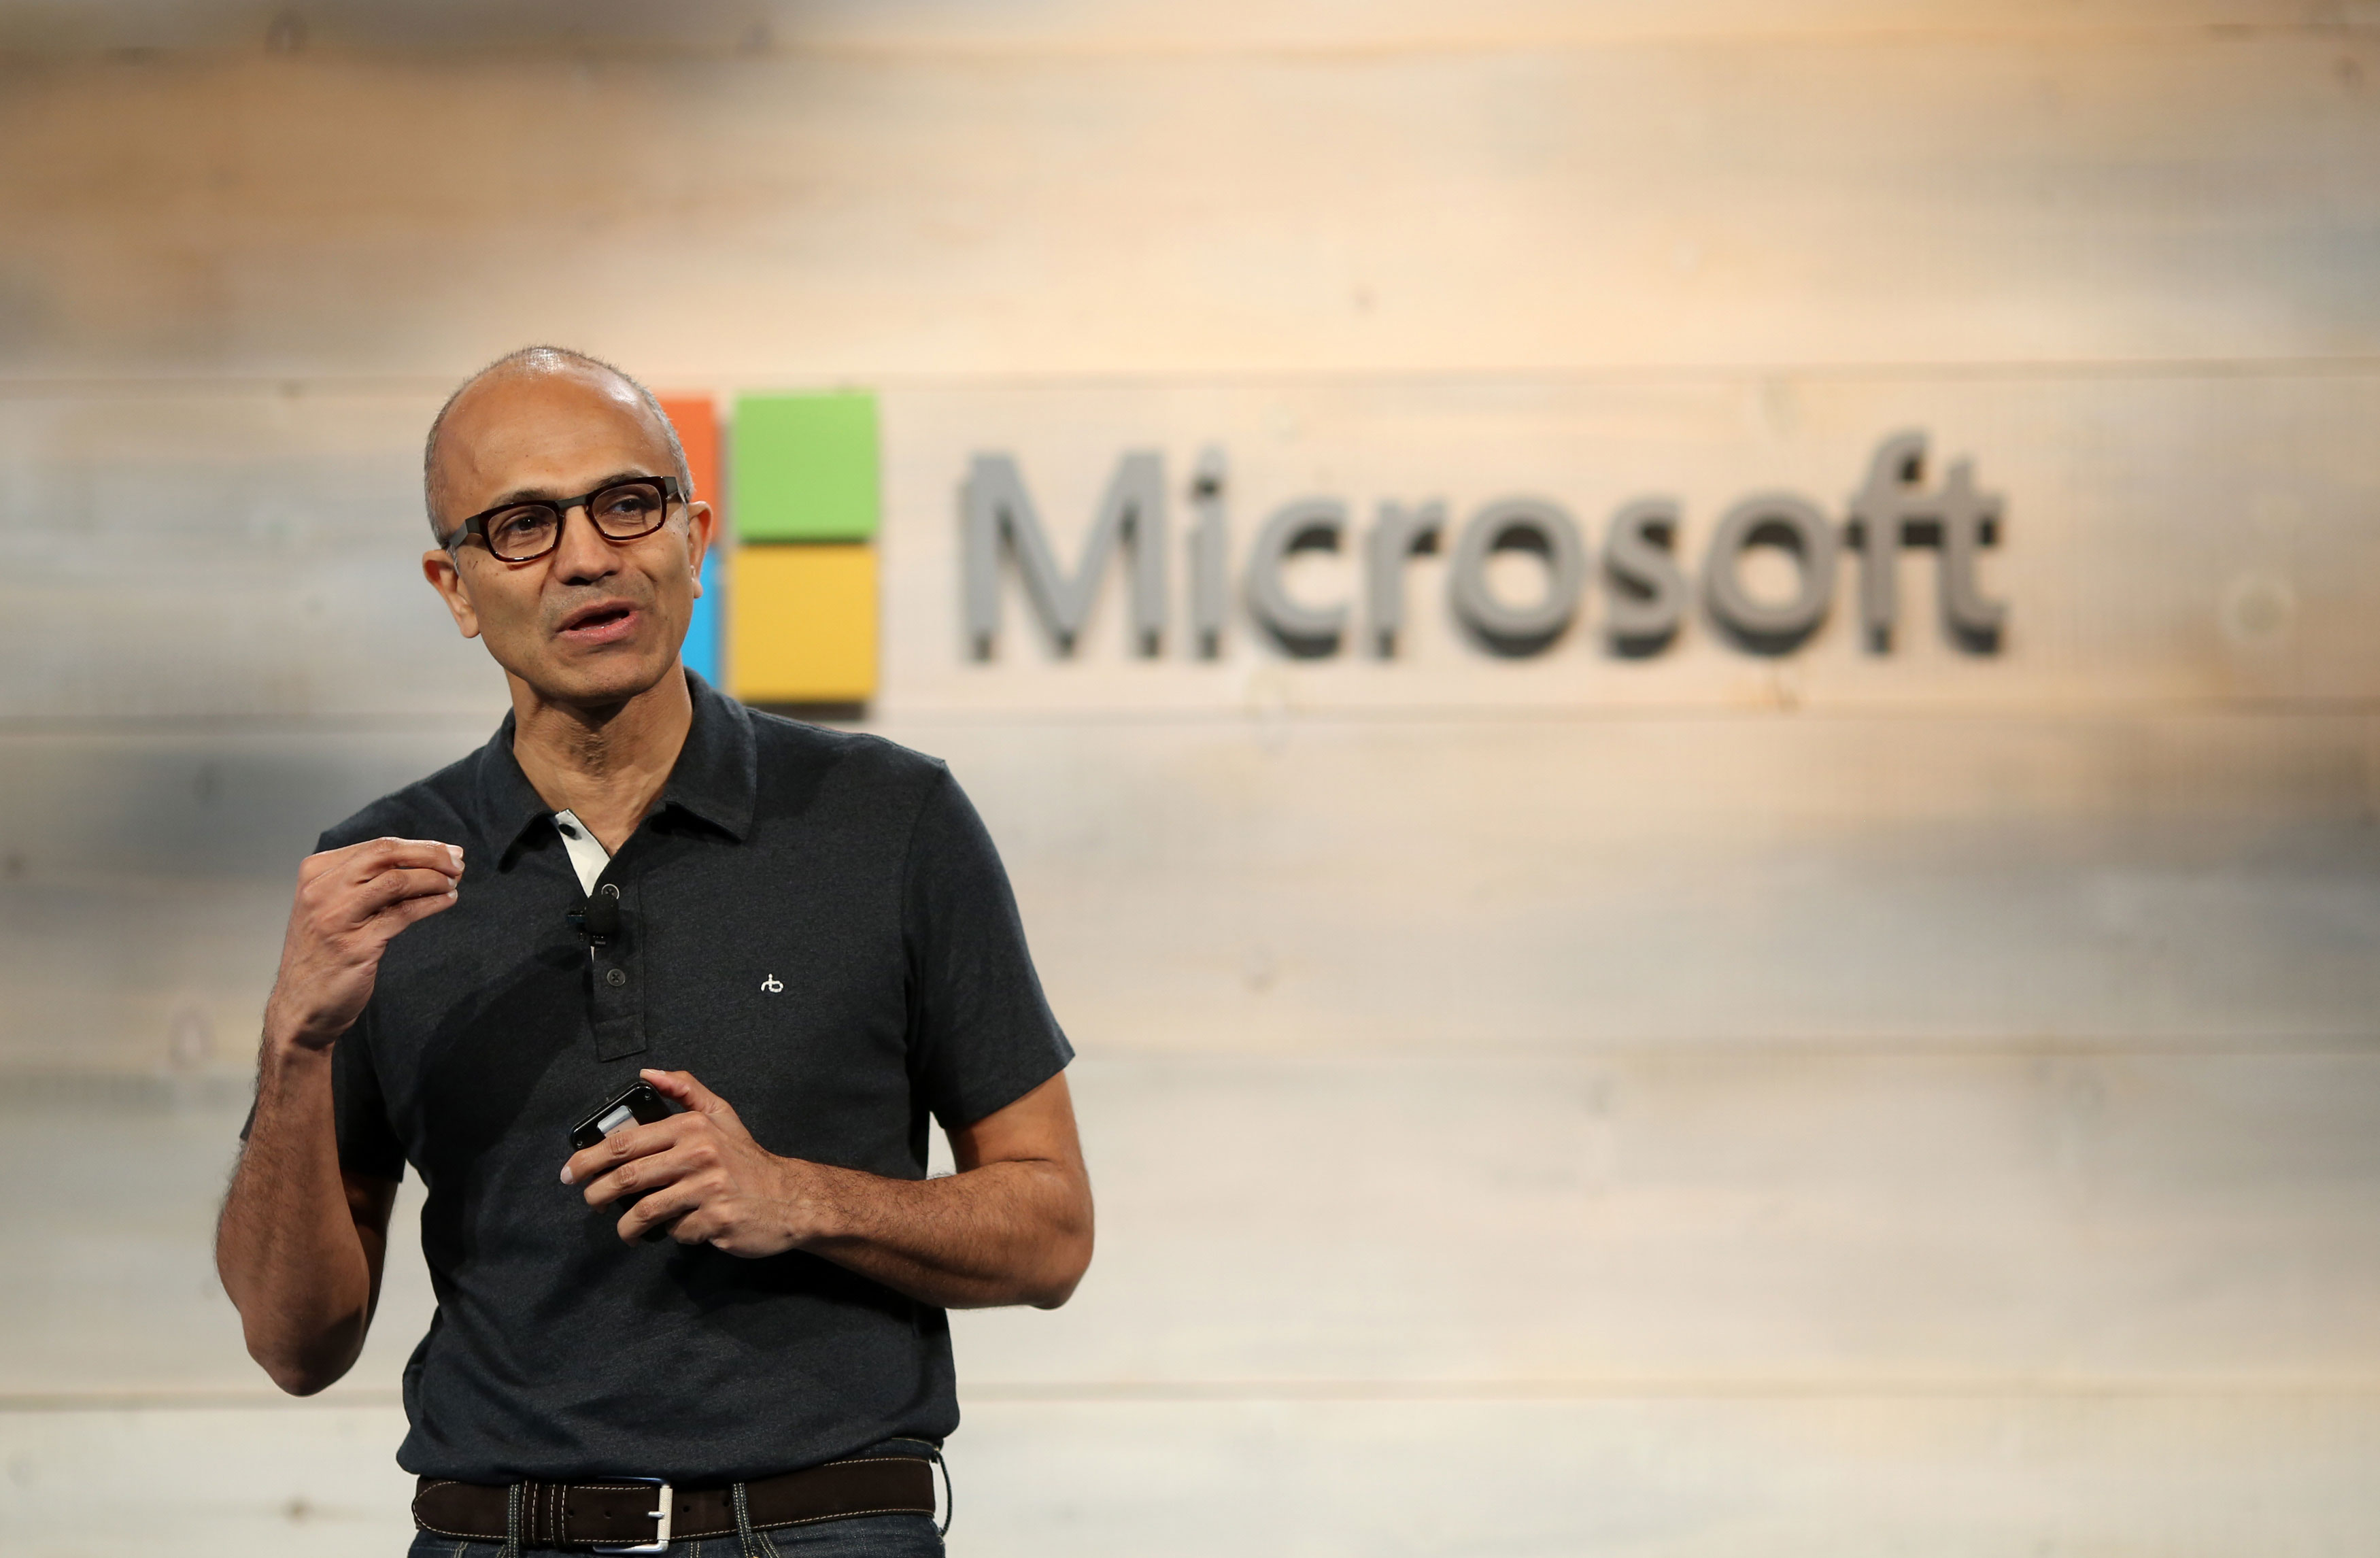 Satya Nadella restructures Microsoft; former Nokia CEO Stephen Elop, three others to leave